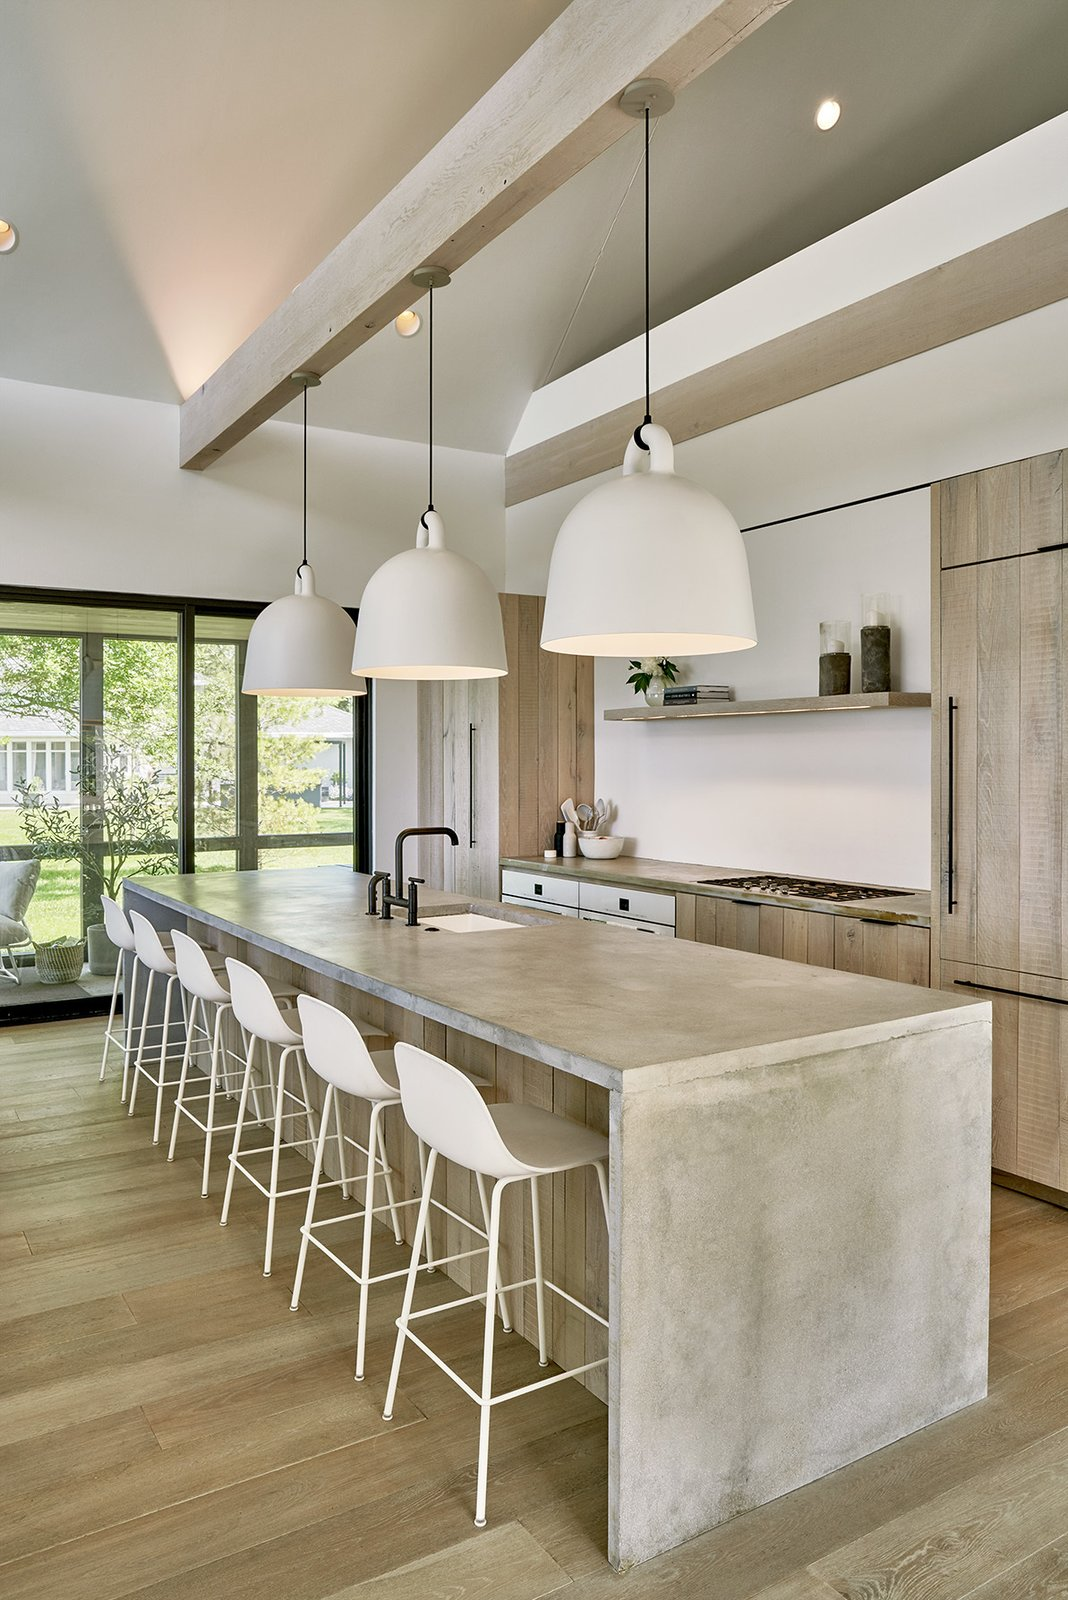 Photo 1 of 286 in Kitchen Concrete Photos from This Wisconsin Lake House Is  Sheathed in Tiles Made of Post-Industrial Waste - Dwell